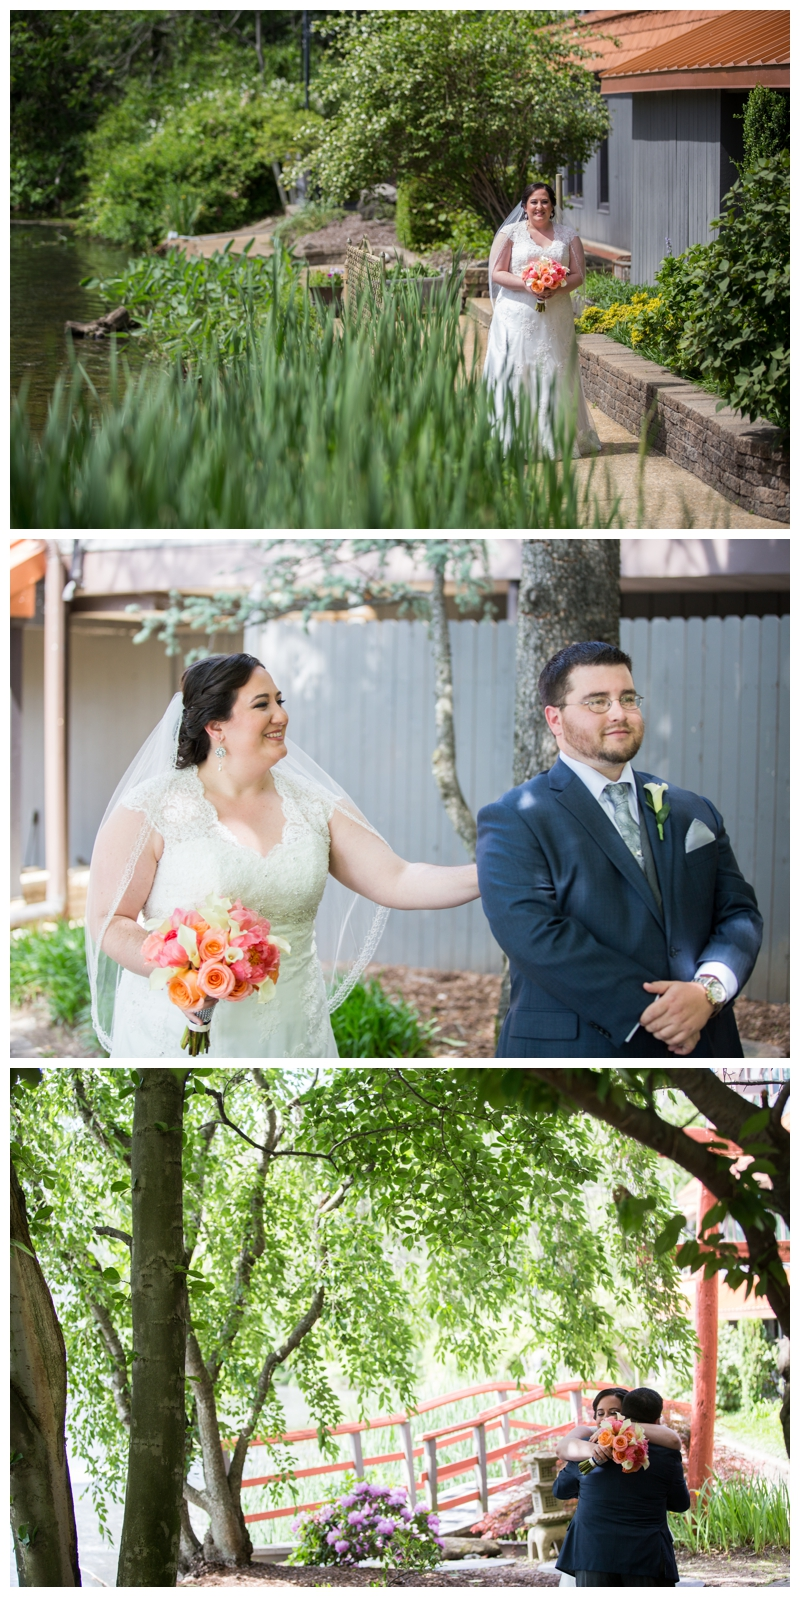 Carla and Bill decided on a First Look before the ceremony so they could get their initial butterflies out.